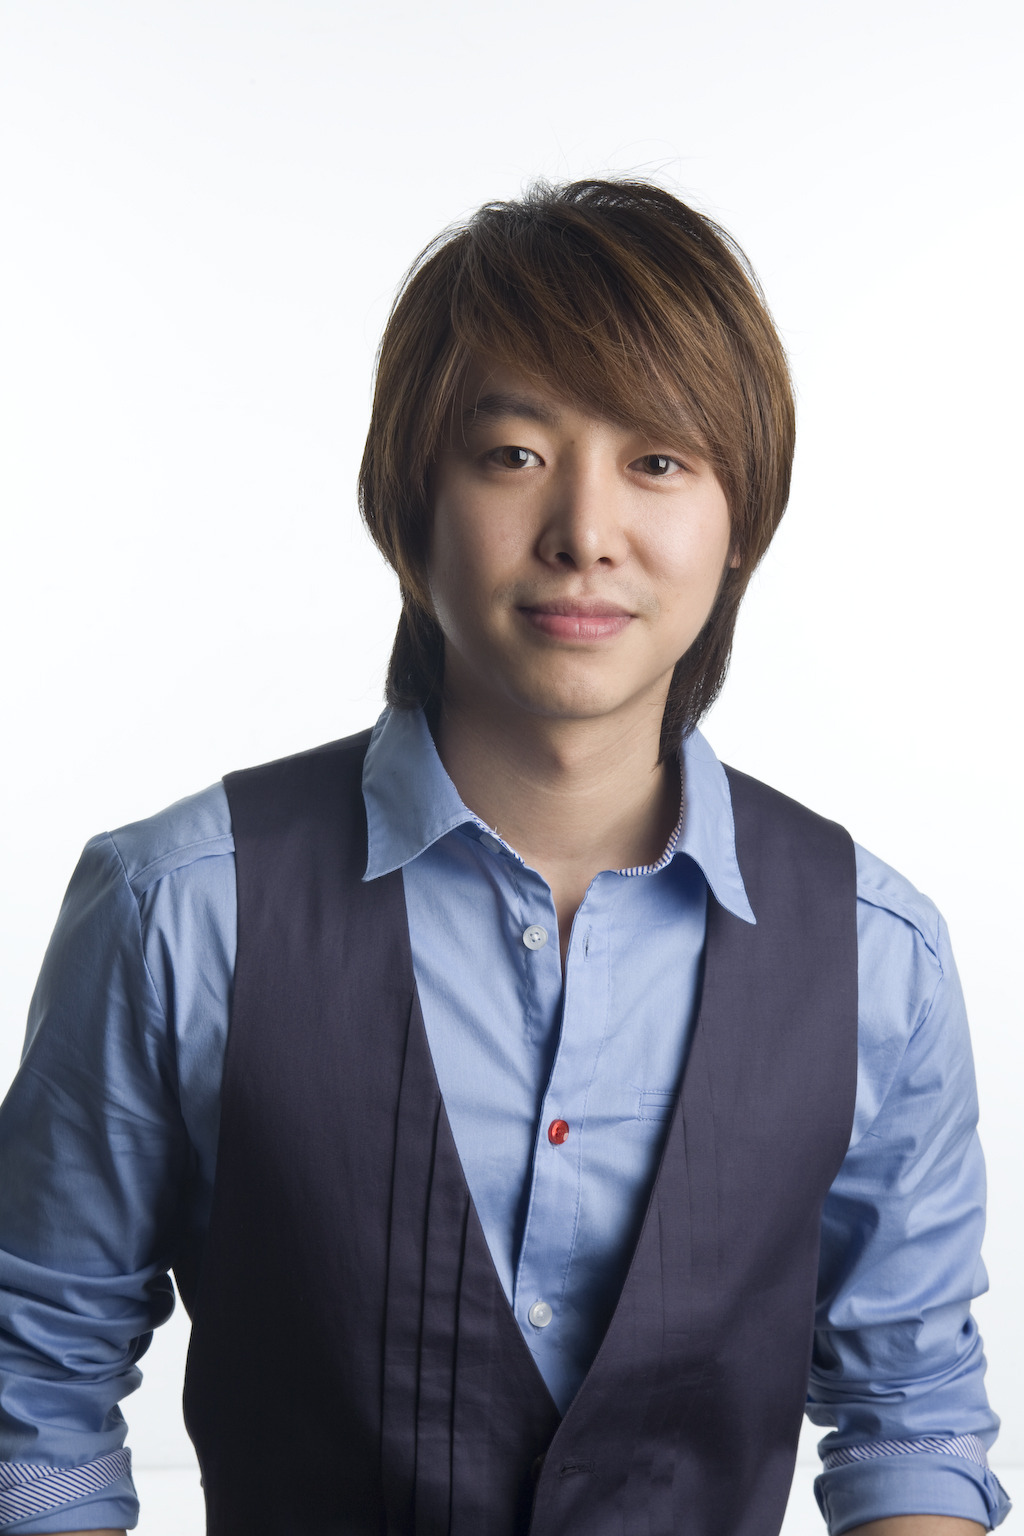 Actor Kim Dong-wook - age: 37